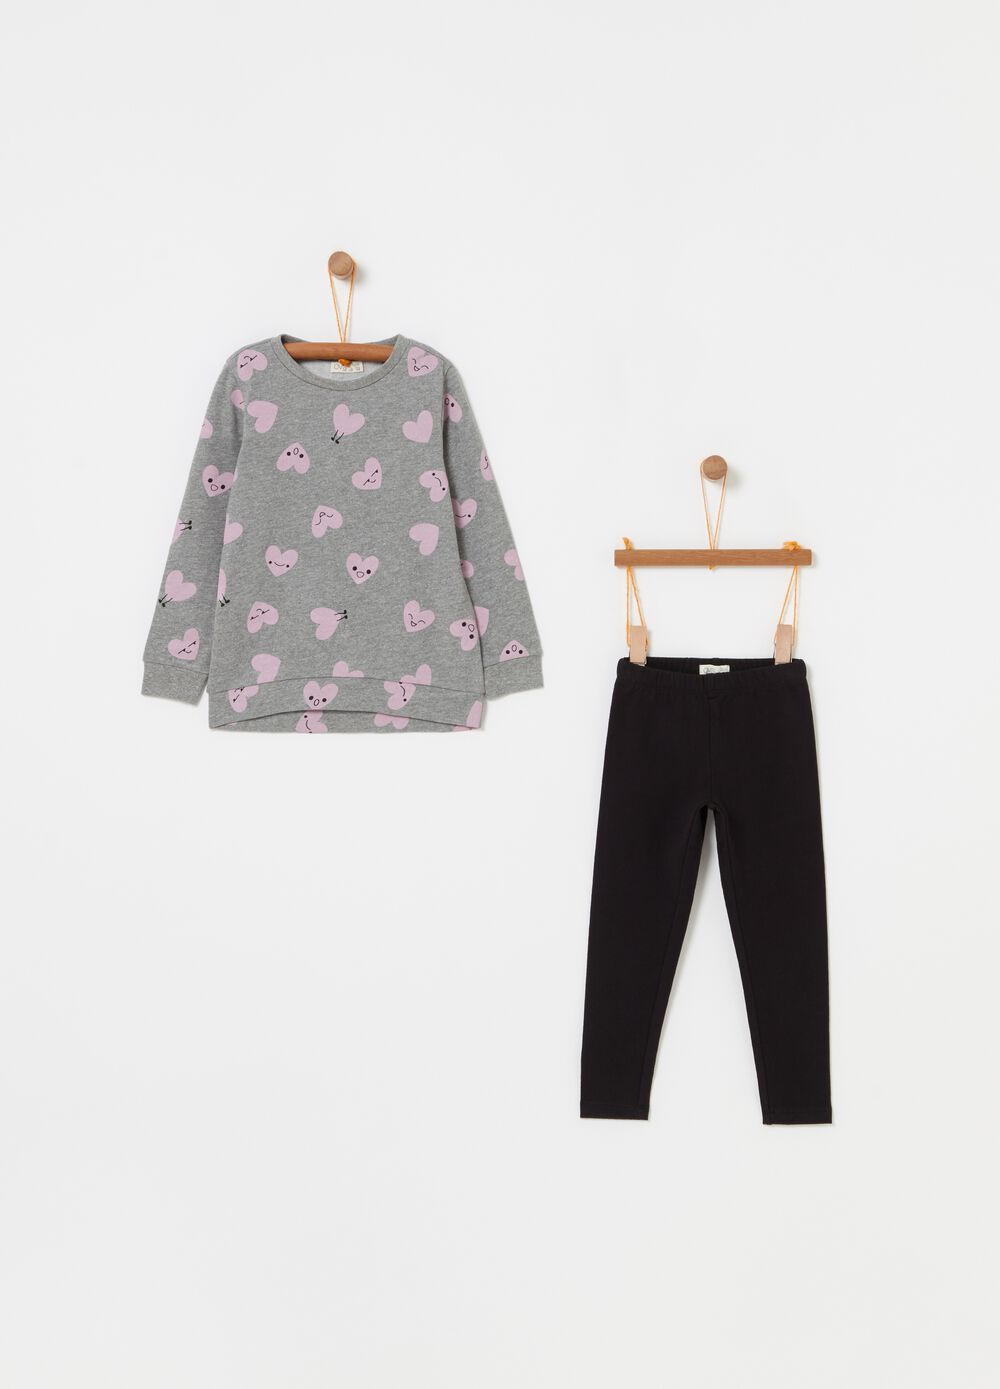 Patterned sweatshirt and leggings jogging set